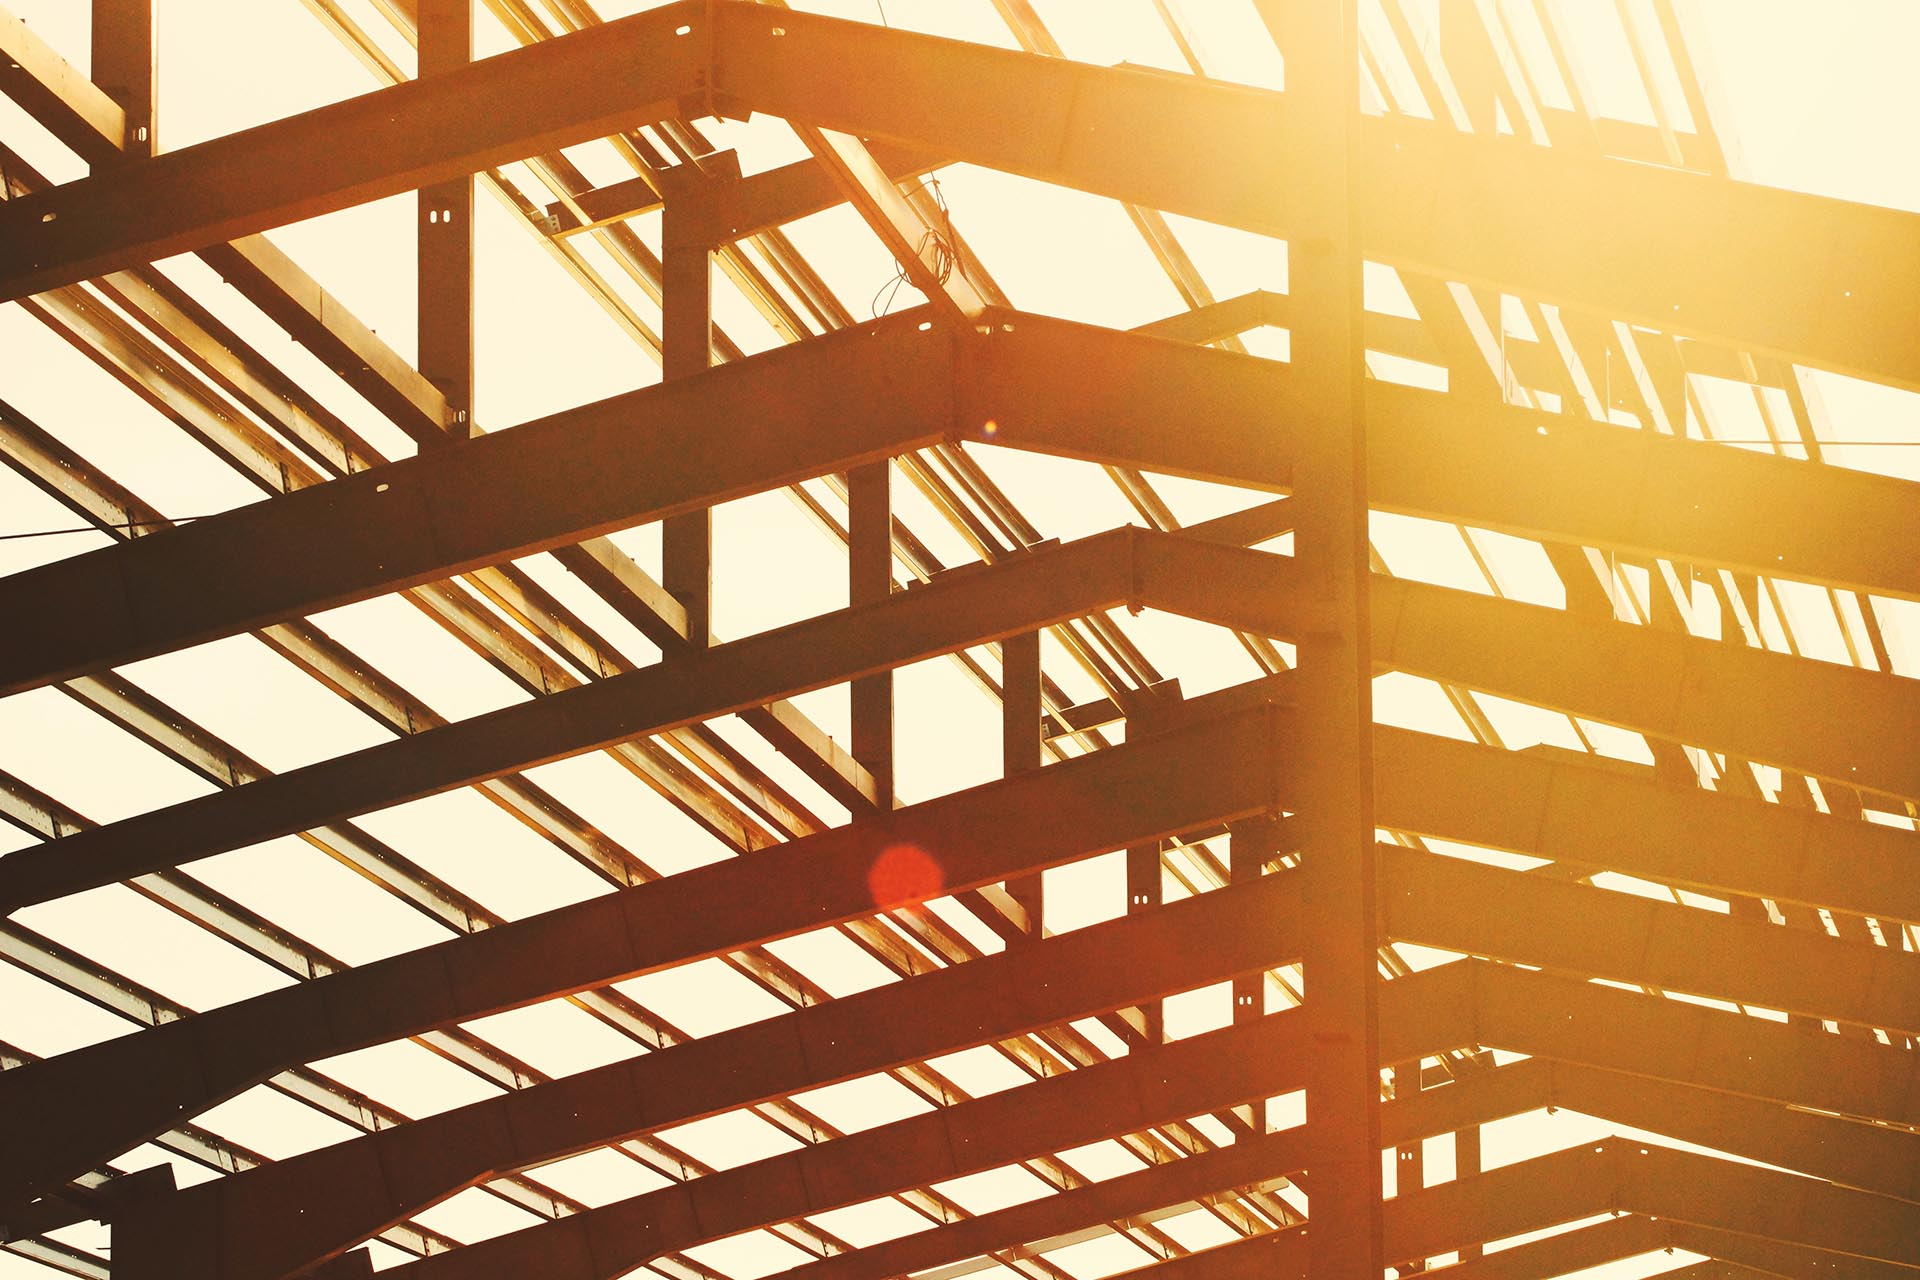 Exposed trusses with sun shining through